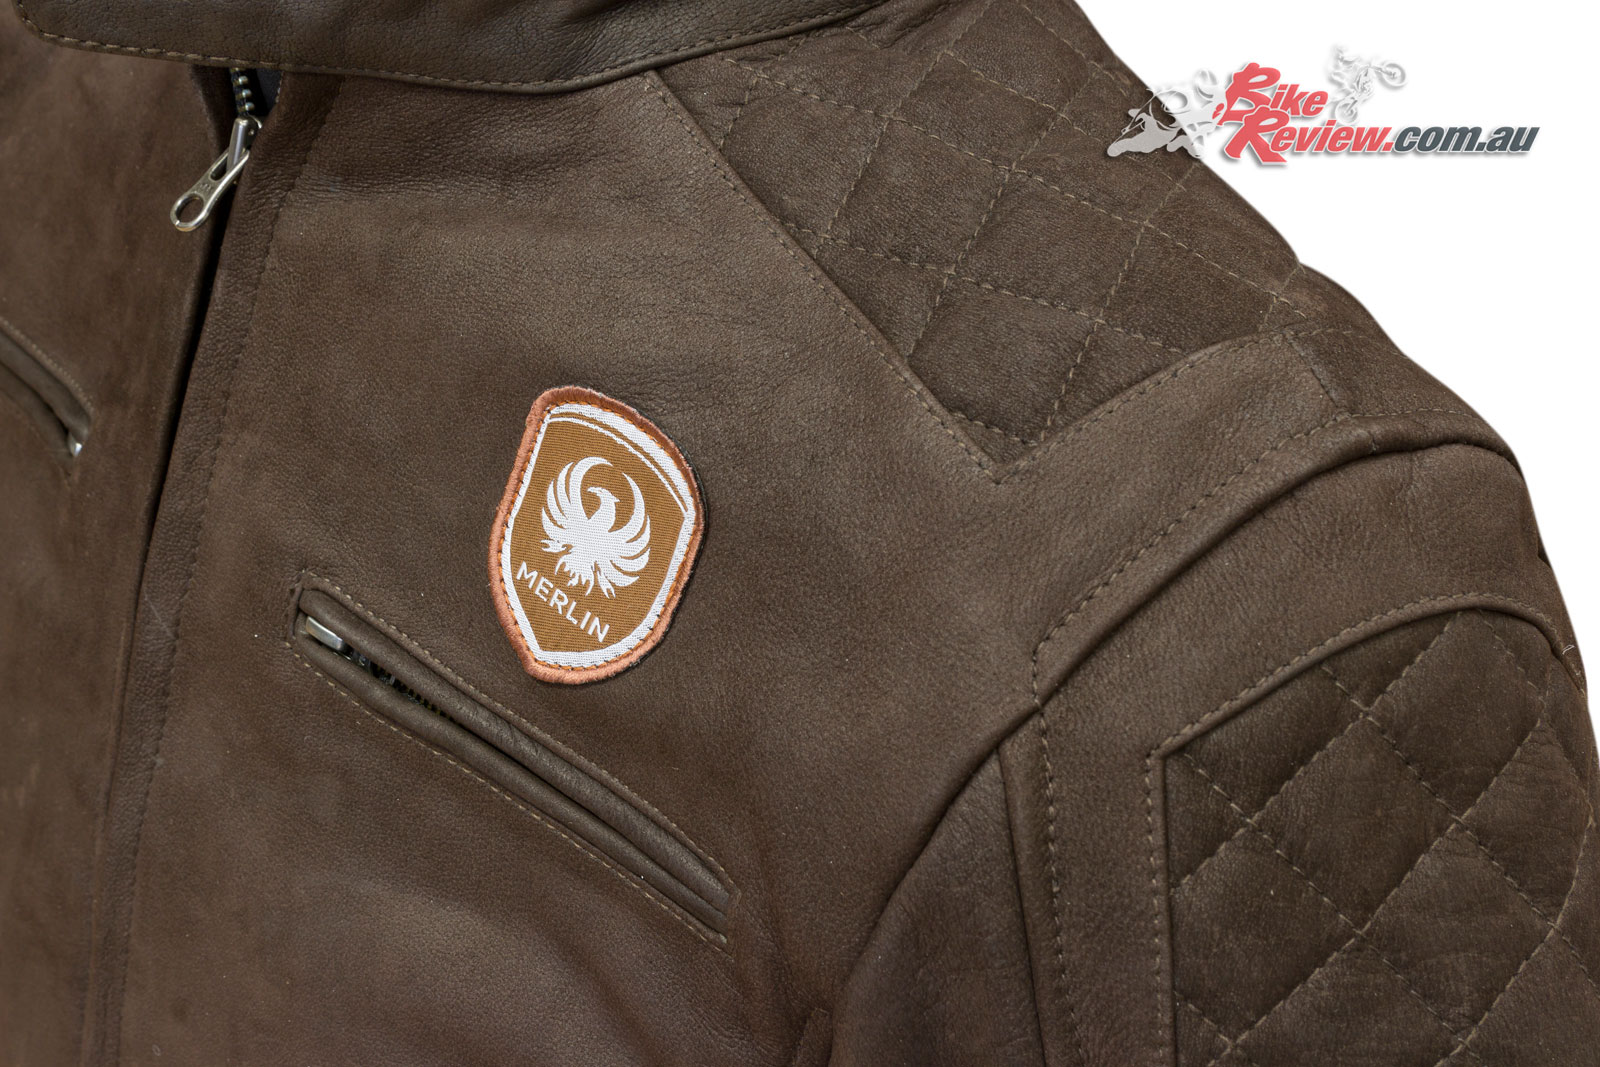 Merlin Hixon Leather Jacket shoulder stitching with CE armour